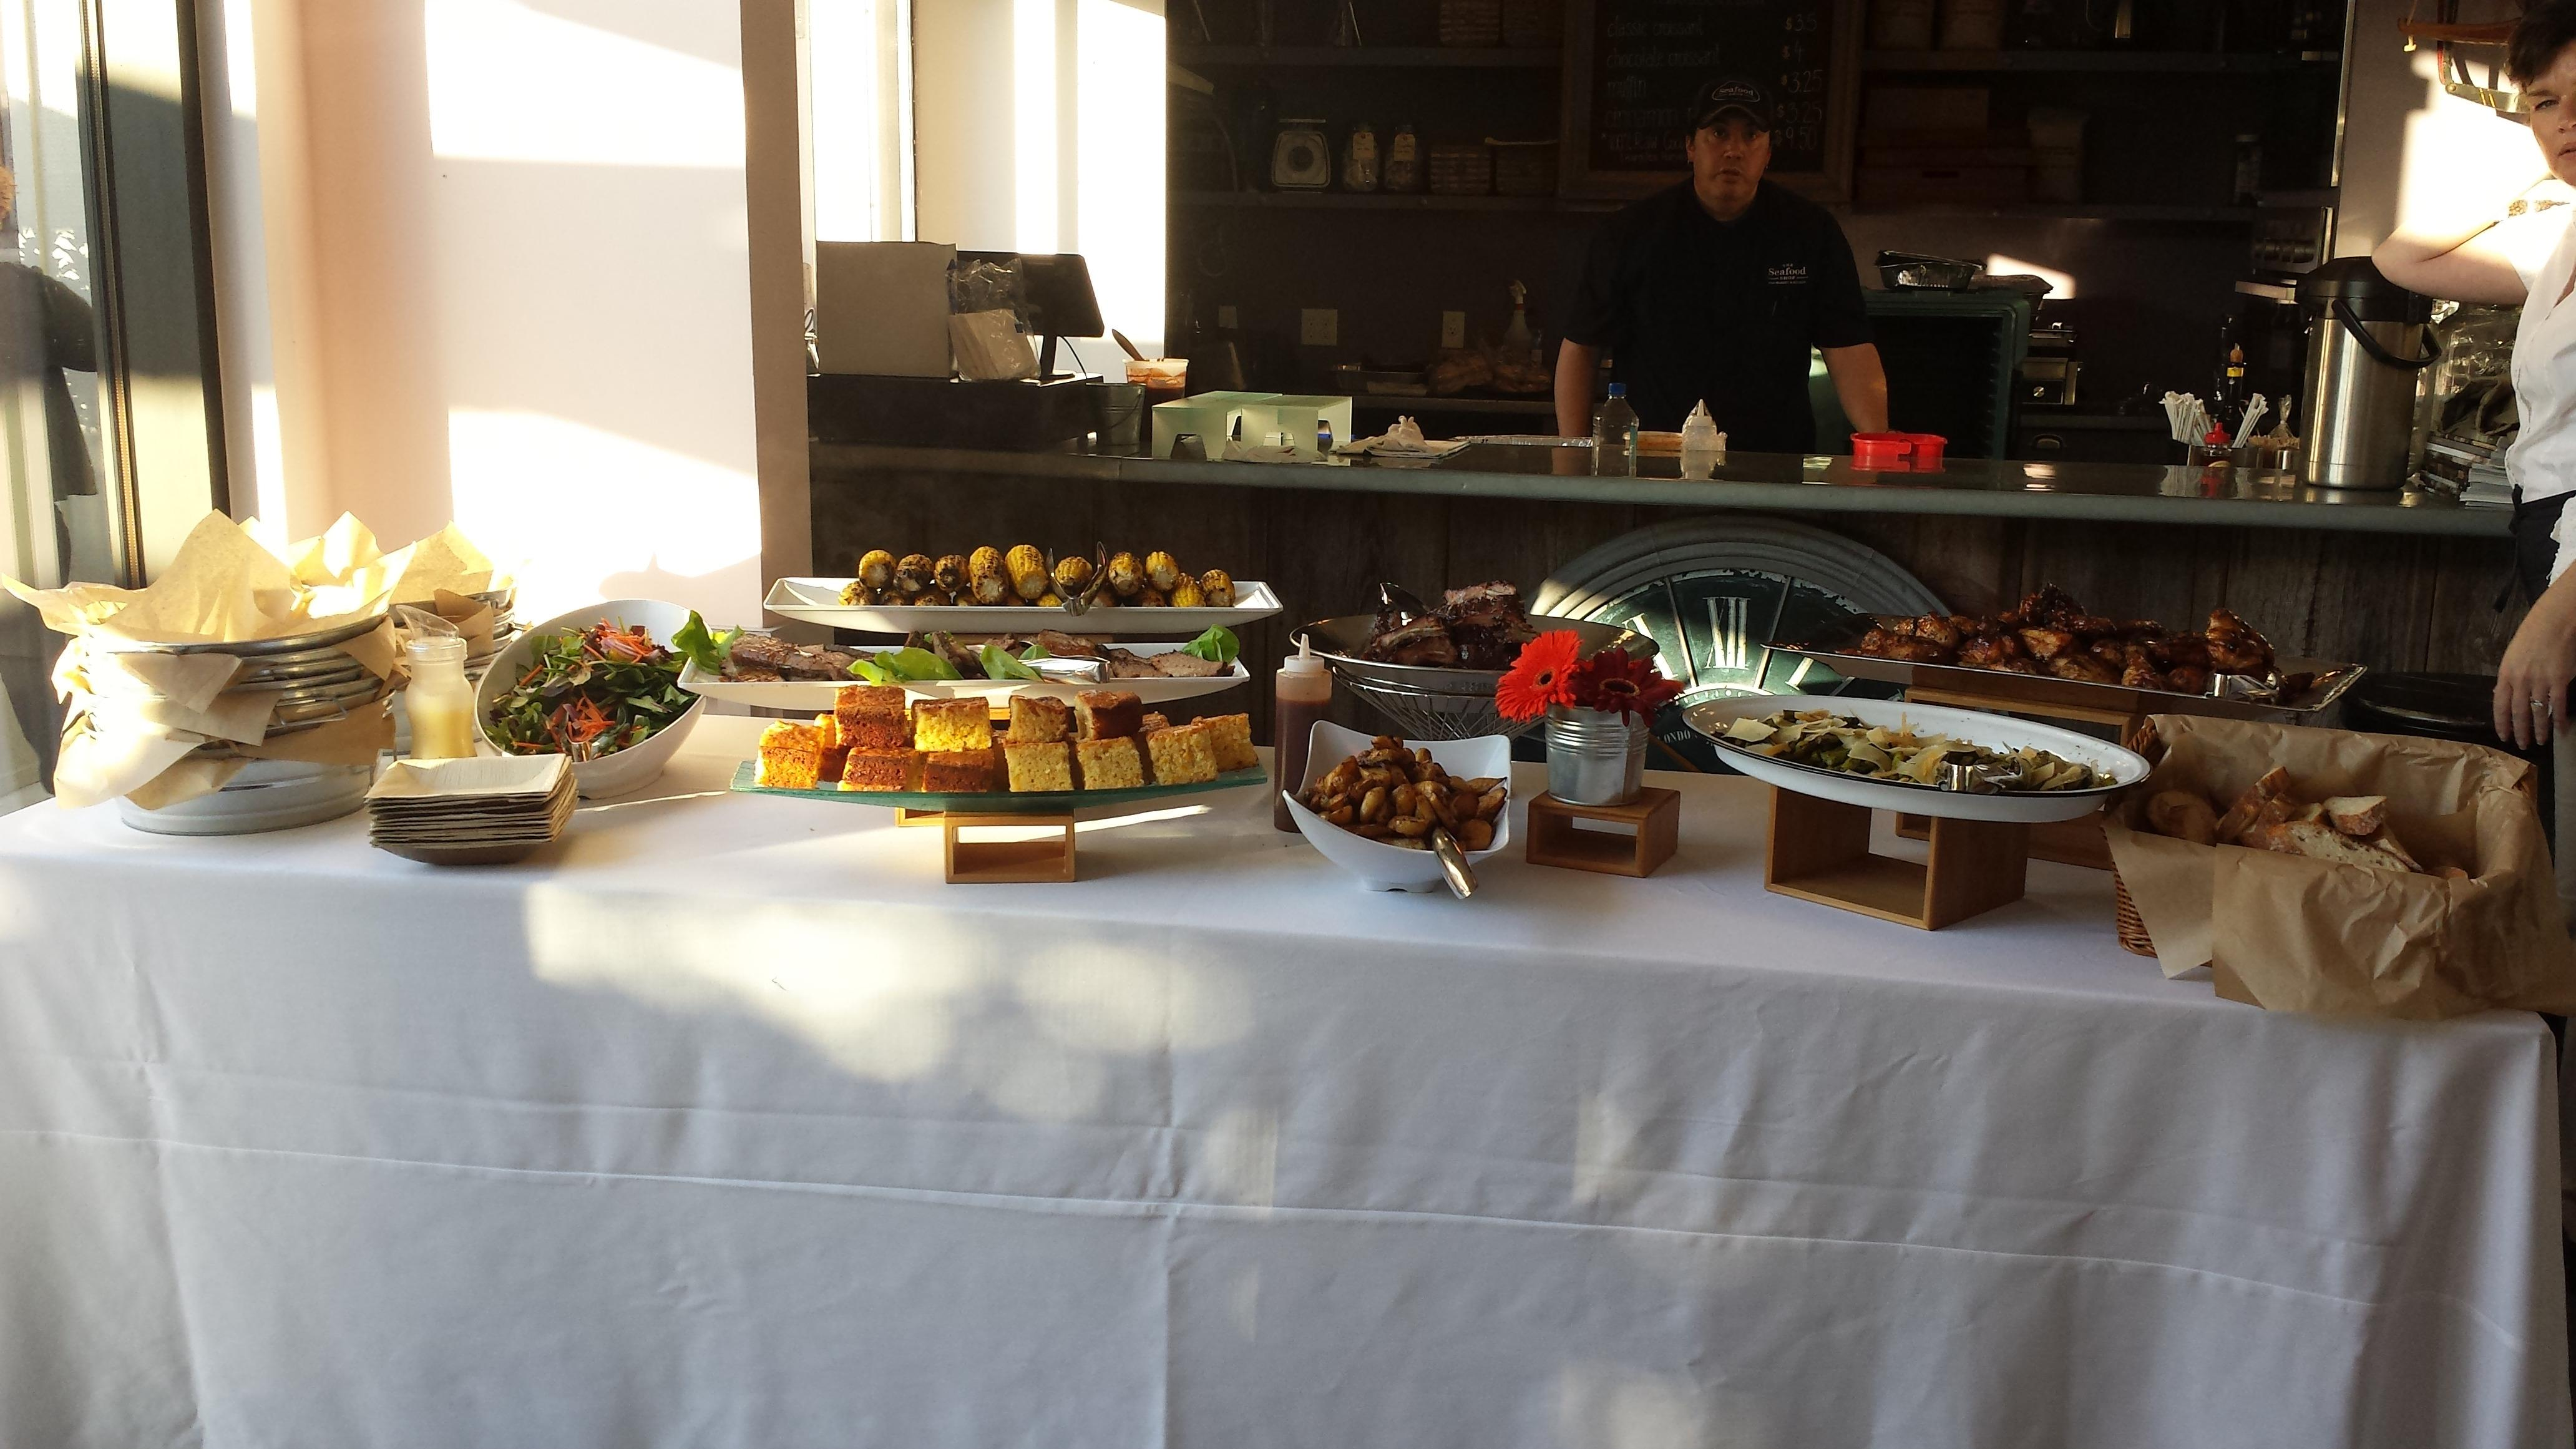 The Seafood Shop Catering image 1